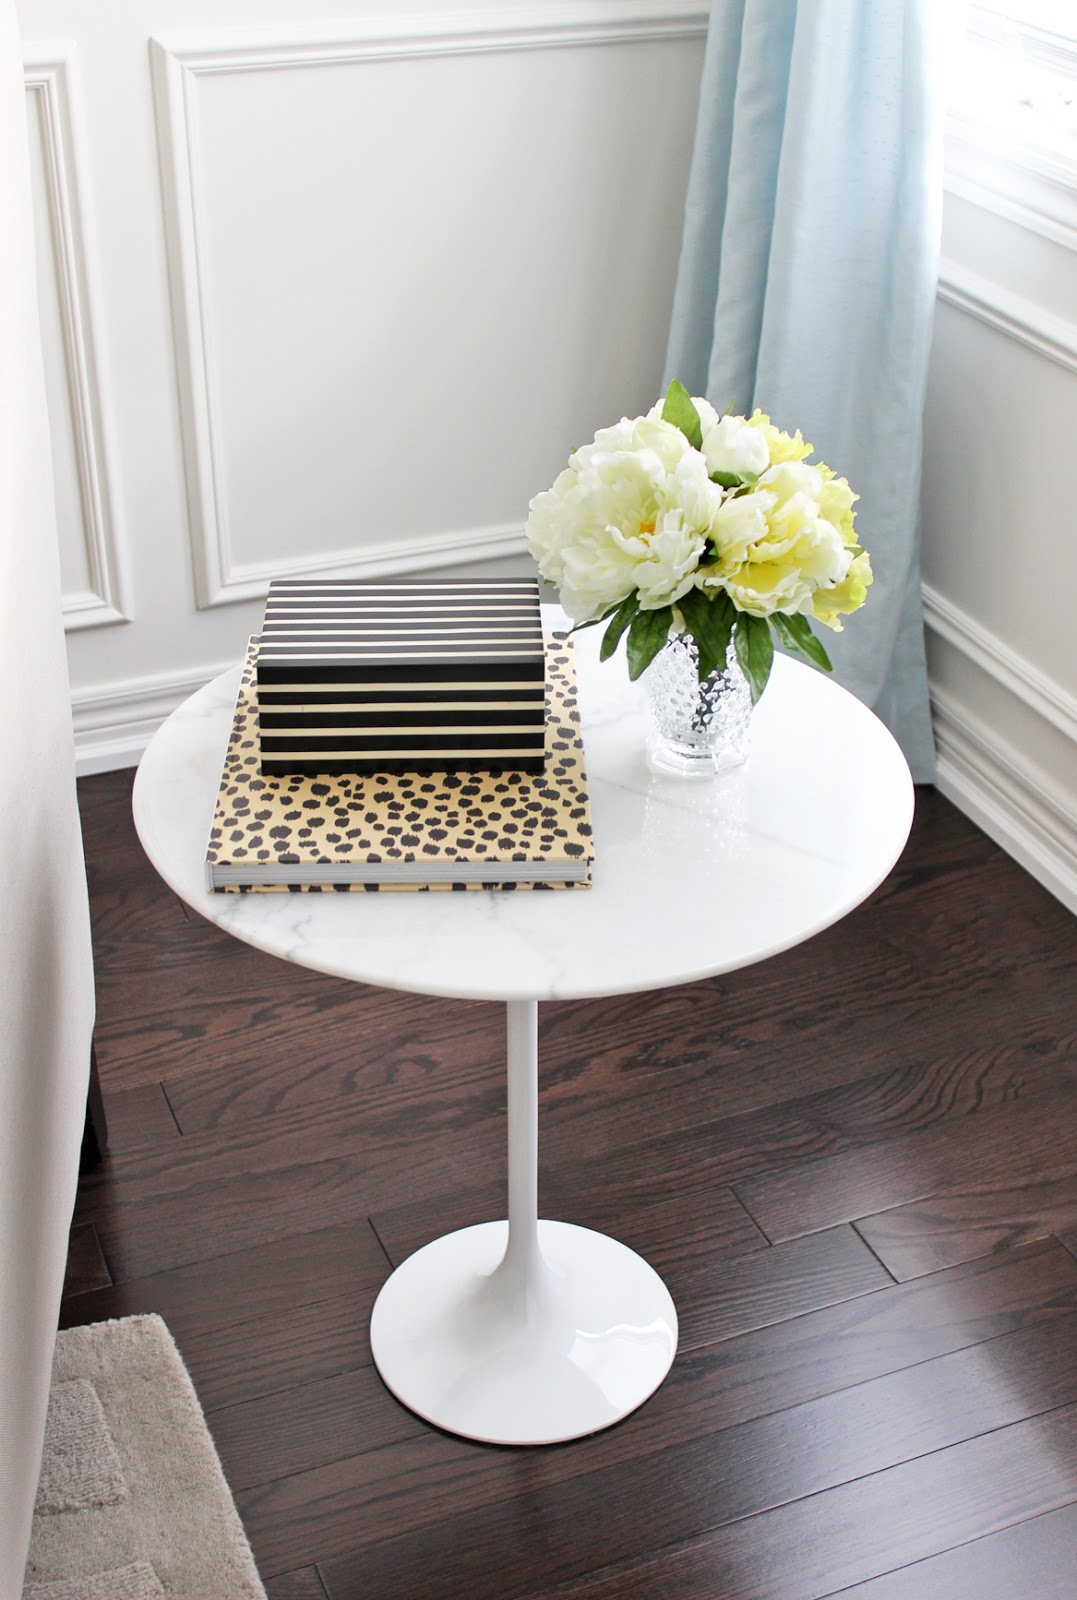 Ikea tulip table to present hassle free and minimalist for Small table setting ideas